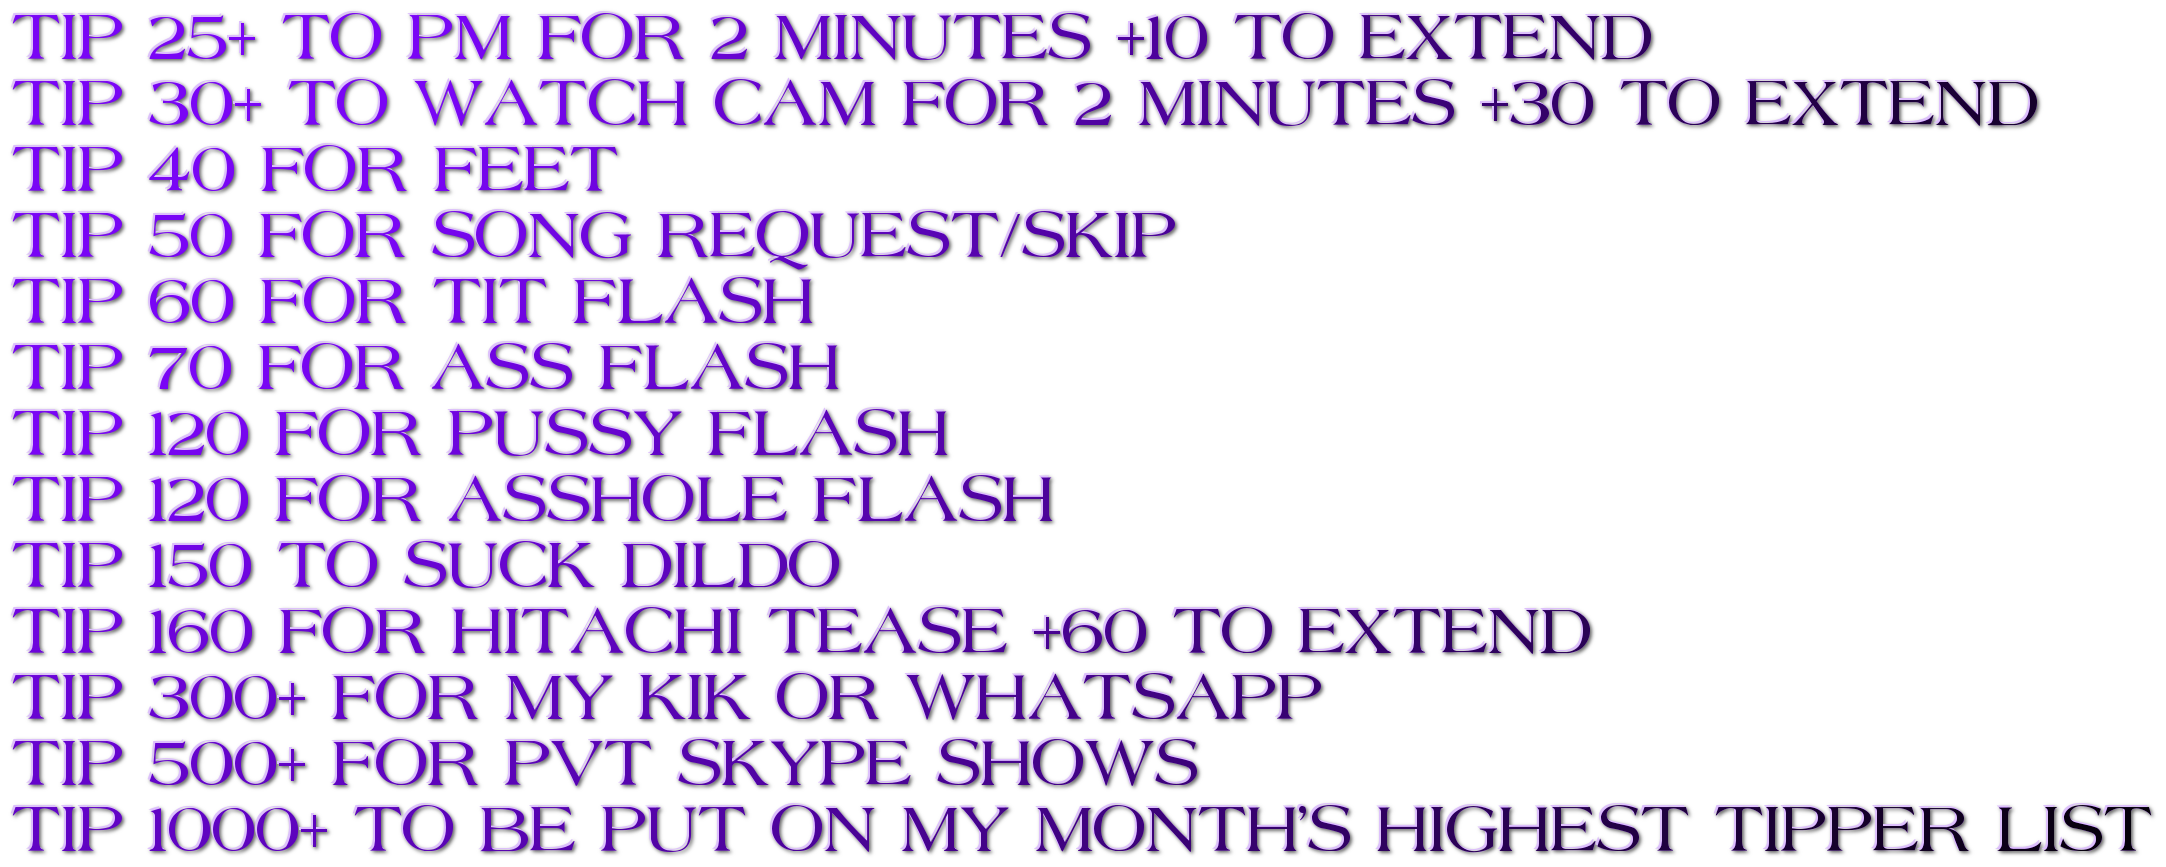 TIP 25+ TO PM FOR 2 MINUTES +10 TO EXTEND TIP 30+ TO WATCH CAM FOR 2 MINUTES +30 TO EXTEND  TIP 40 FOR FEET                                       TIP 50 FOR SONG REQUEST/SKIP TIP 60 FOR TIT FLASH TIP 70 FOR ASS FLASH TIP 120 FOR PUSSY FLASH  TIP 120 FOR ASSHOLE FLASH TIP 150 TO SUCK DILDO  TIP 160 FOR HITACHI TEASE +60 TO EXTEND  TIP 300+ FOR MY KIK OR WHATSAPP  TIP 500+ FOR PVT SKYPE SHOWS TIP 1000+ TO BE PUT ON MY MONTH'S HIGHEST TIPPER LIST